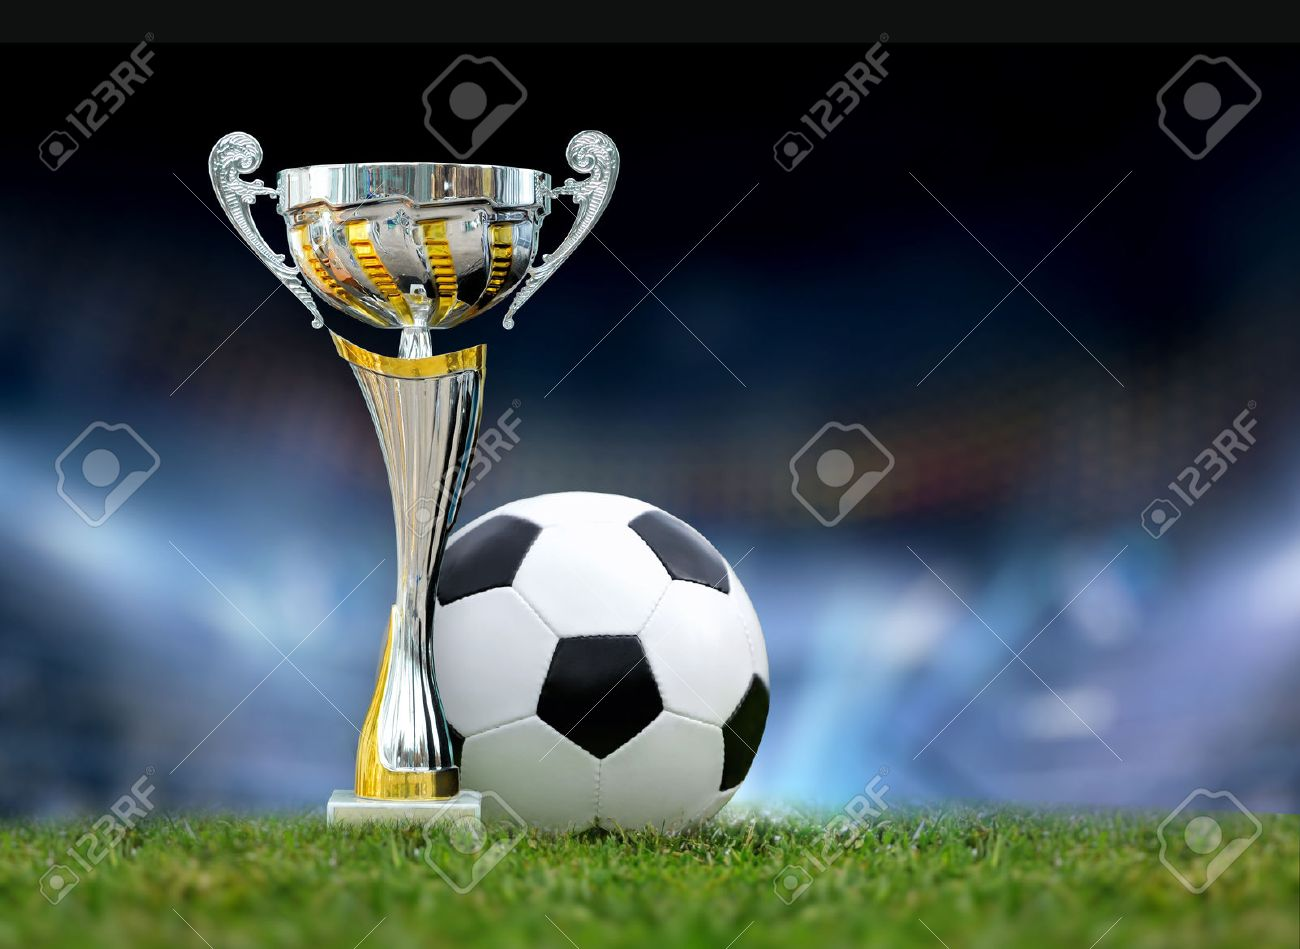 Golden trophy in grass on soccer field background Standard-Bild - 40886519